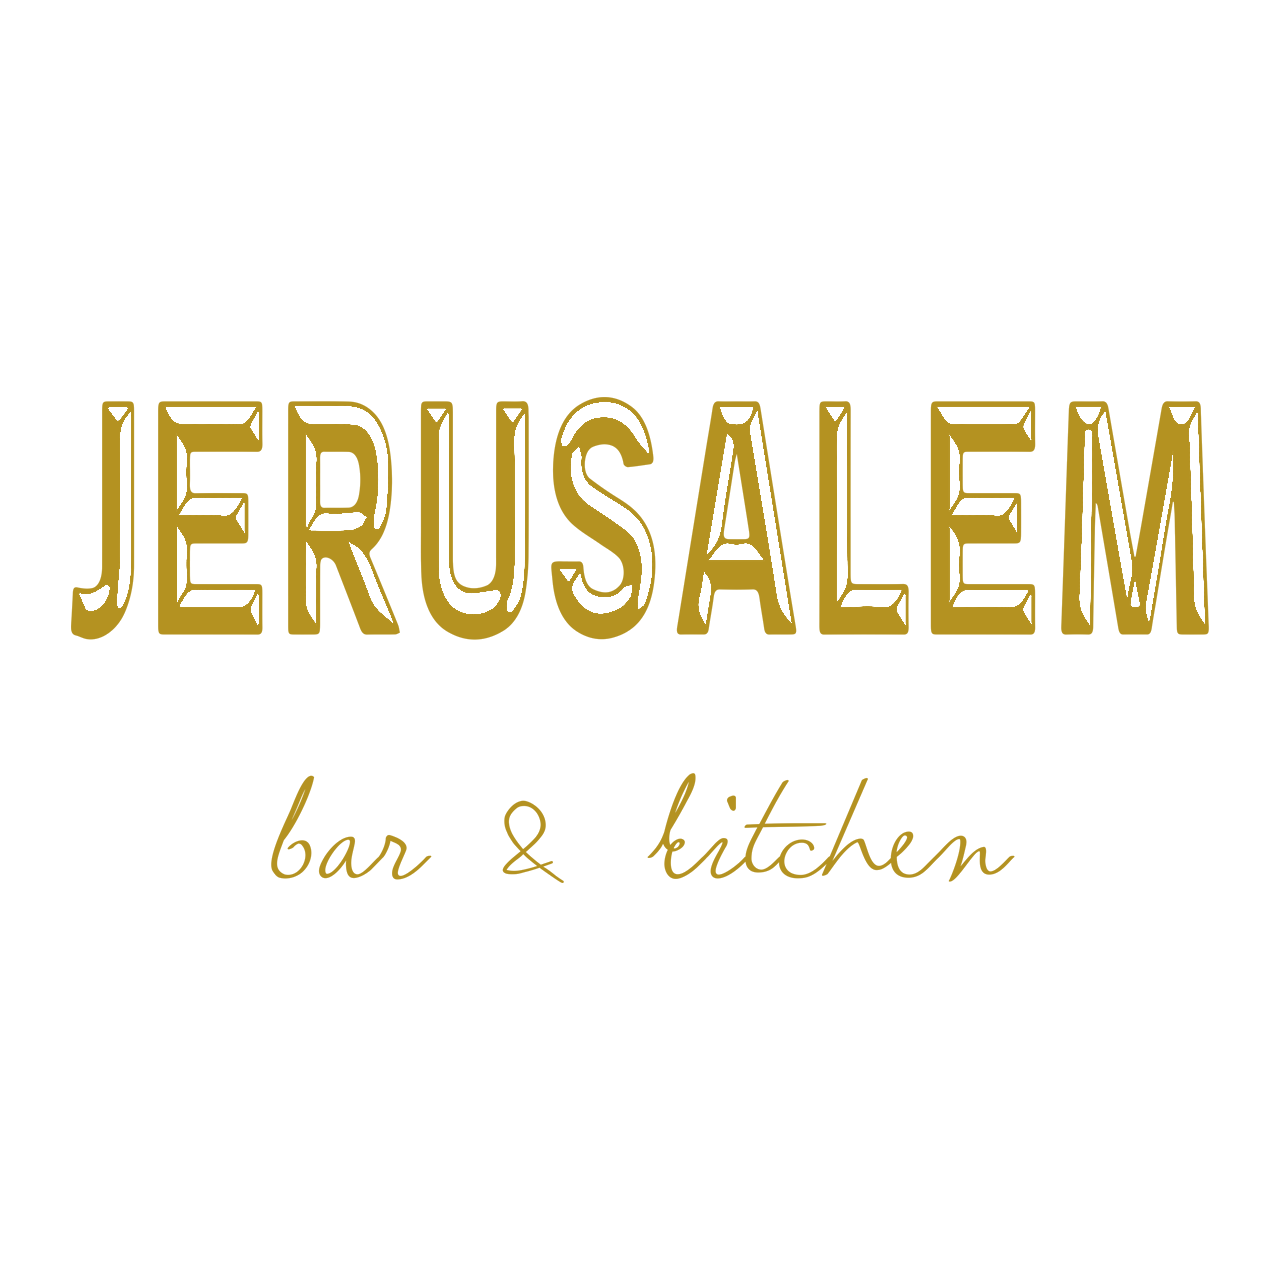 Jerusalem Bar & Kitchen